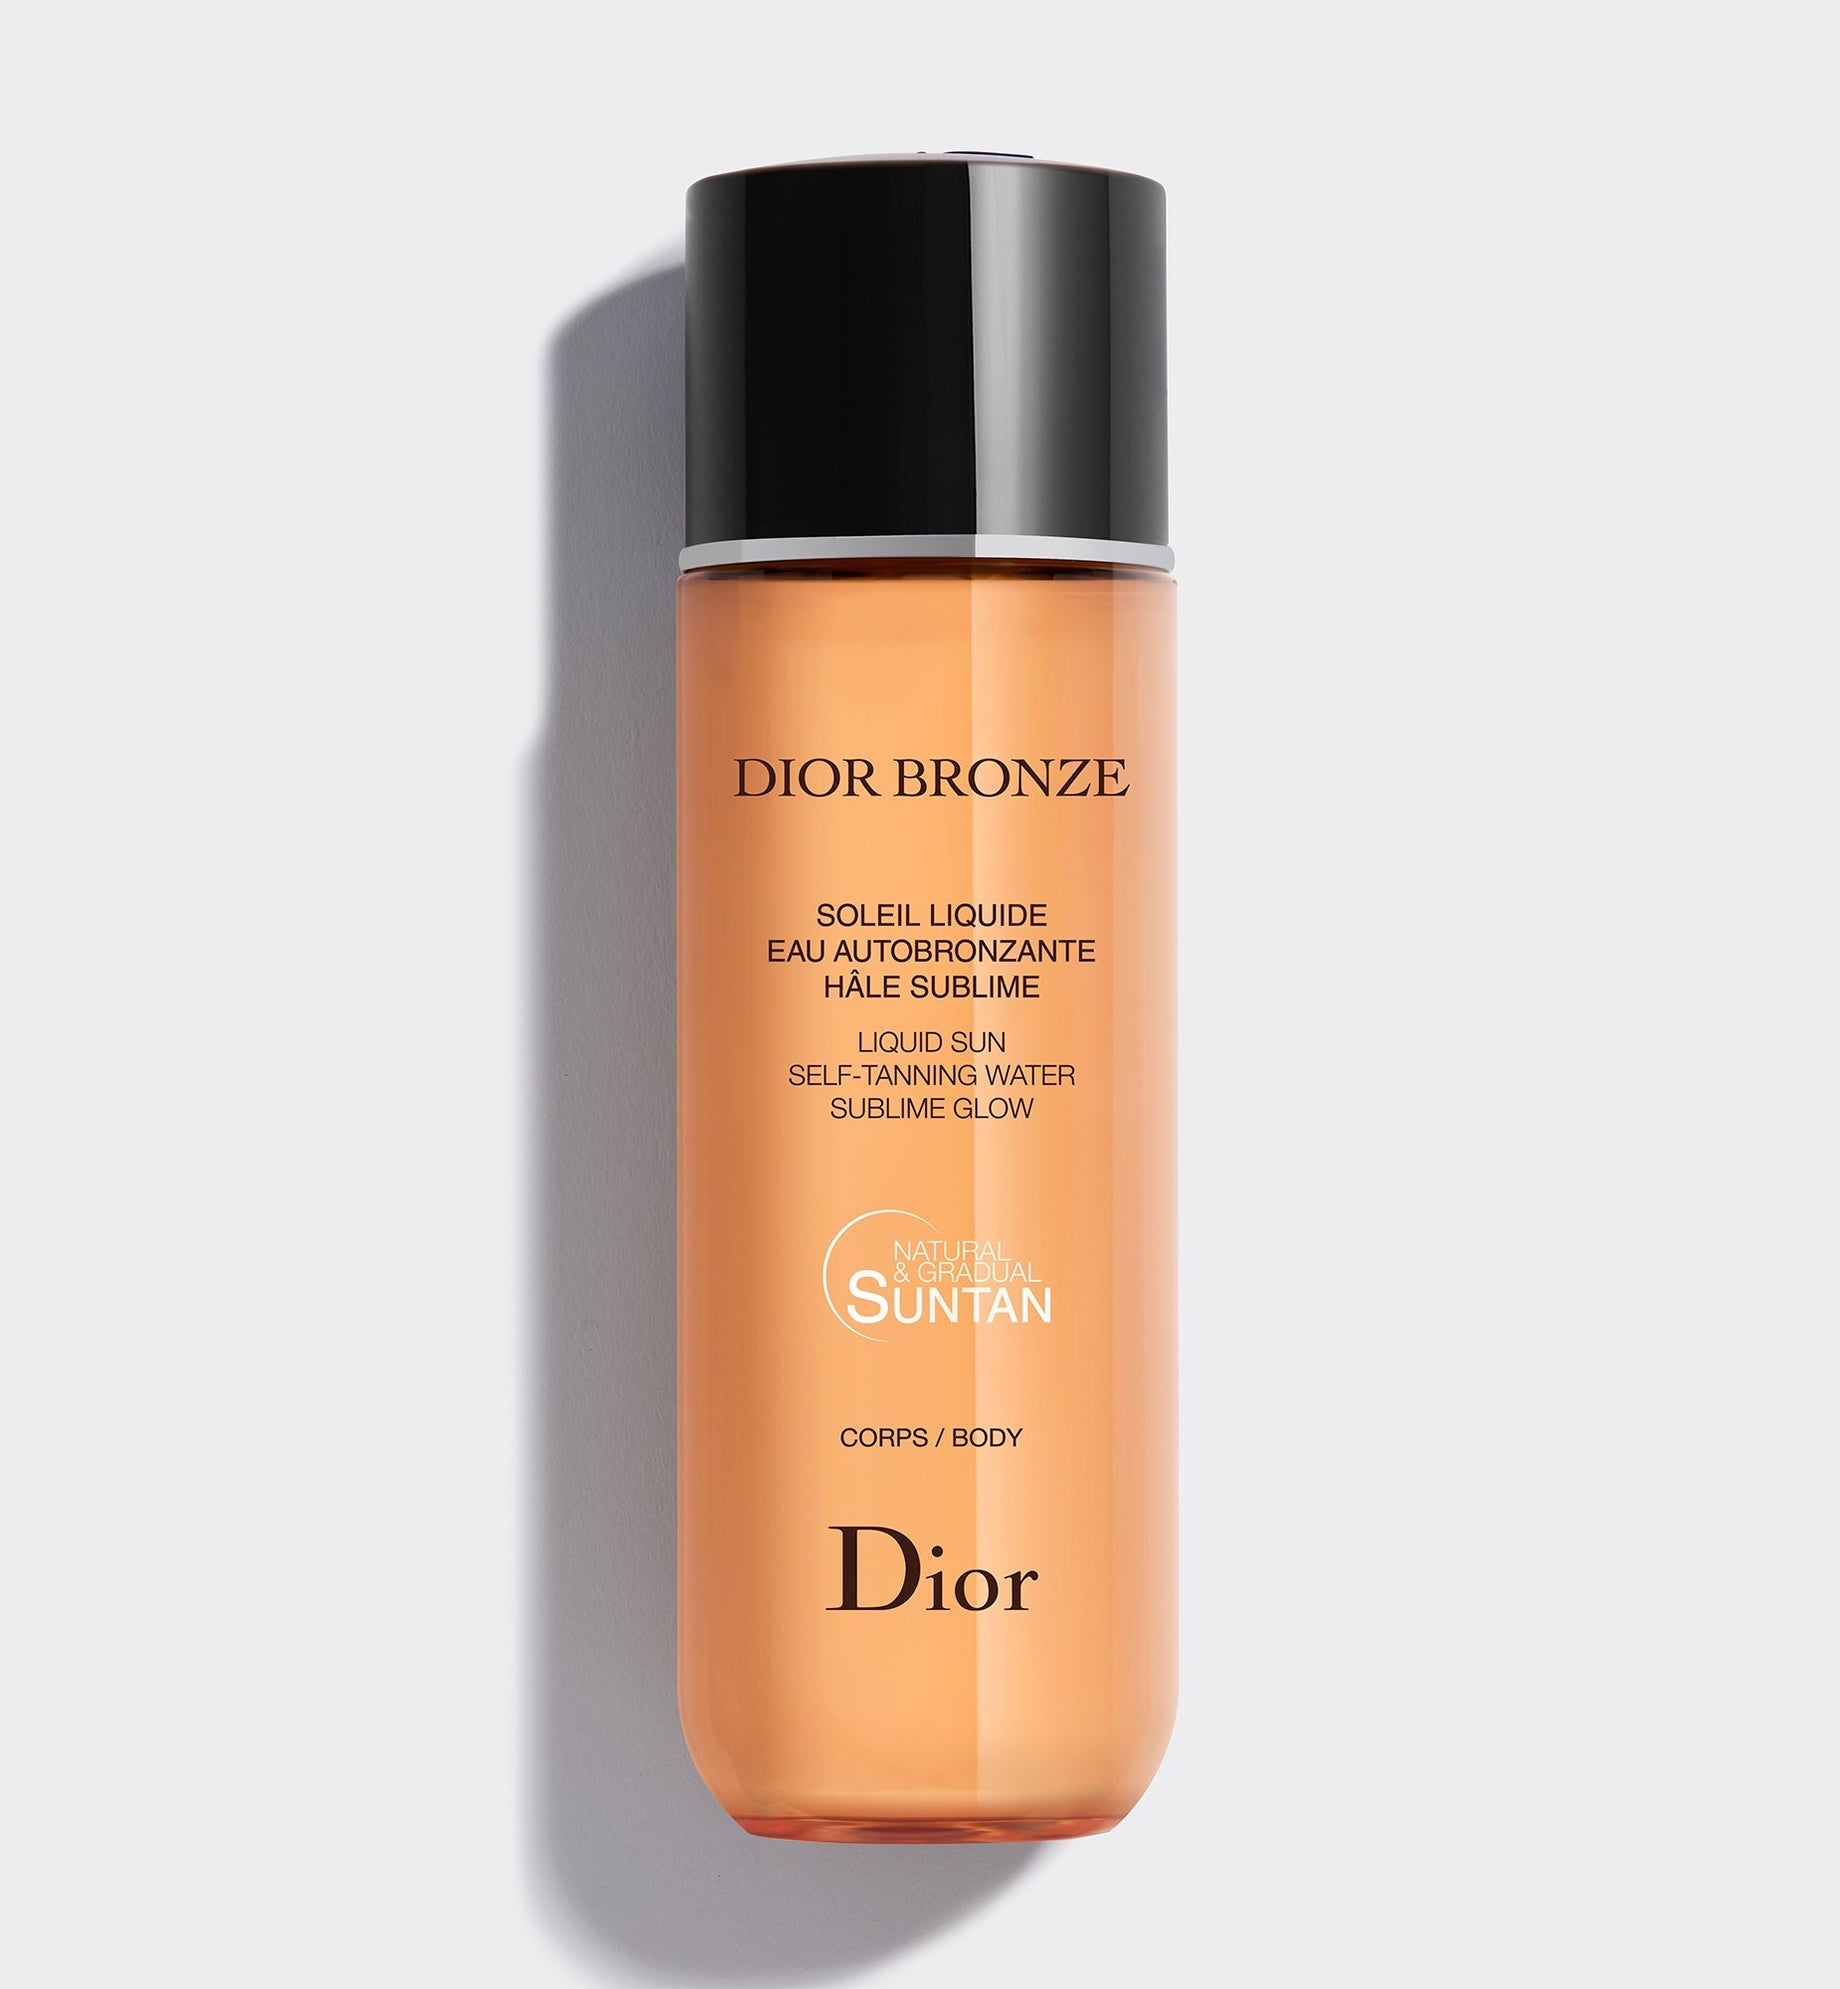 DIOR BRONZE LIQUID SUN - SELF-TANNING WATER - SUBLIME GLOW